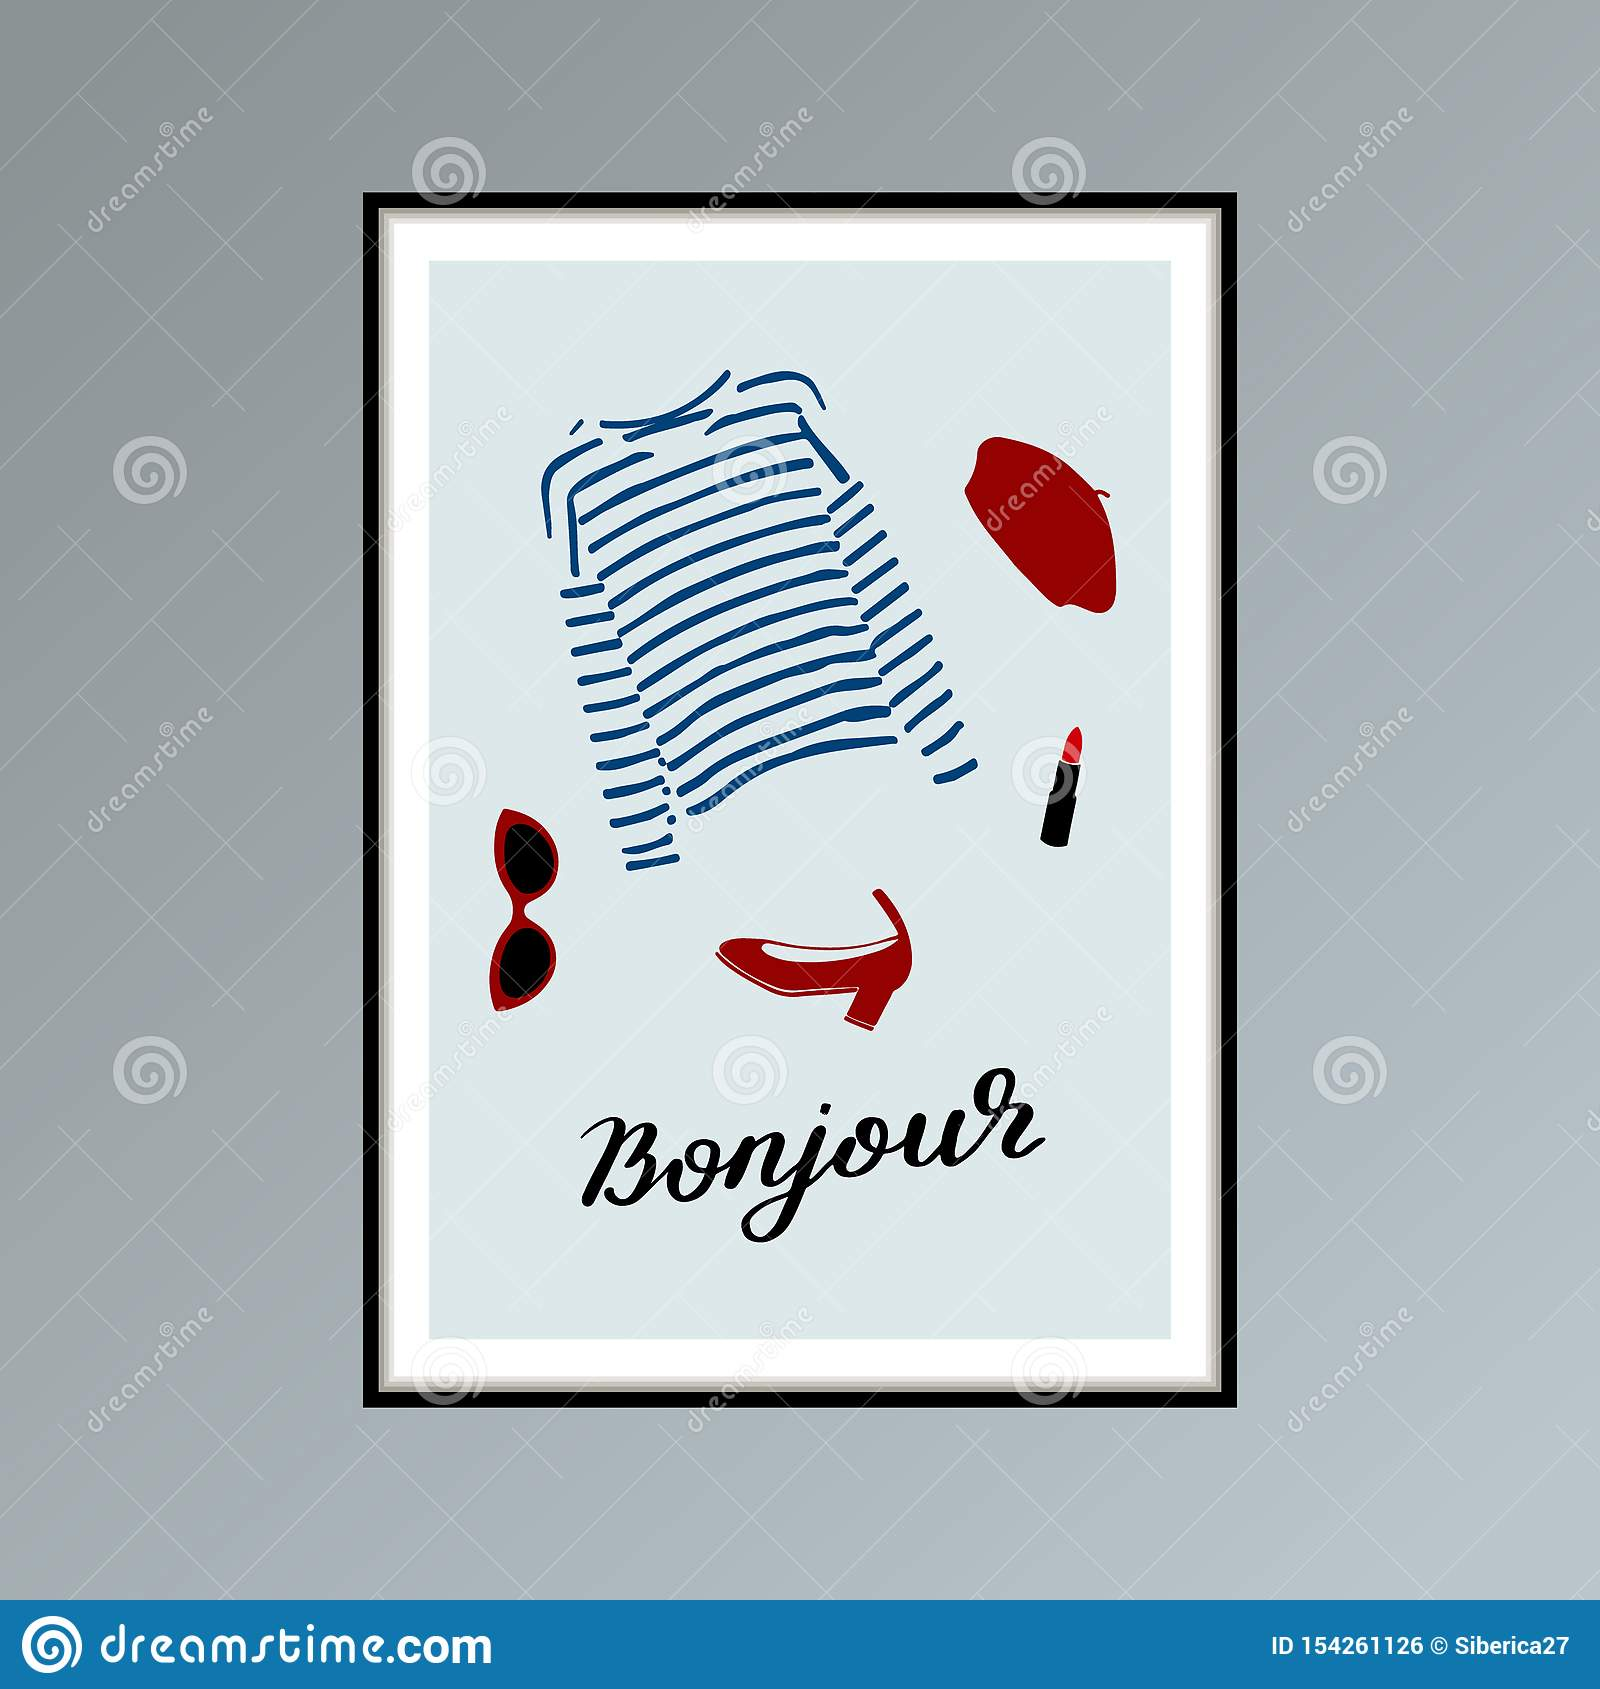 Poster With Beret Striped Longlsleeve Shirt Lipstick Shoe And Hand Lettered Word Bonjour Good Day In French Stock Vector Illustration Of Longsleeve Mariniere 154261126